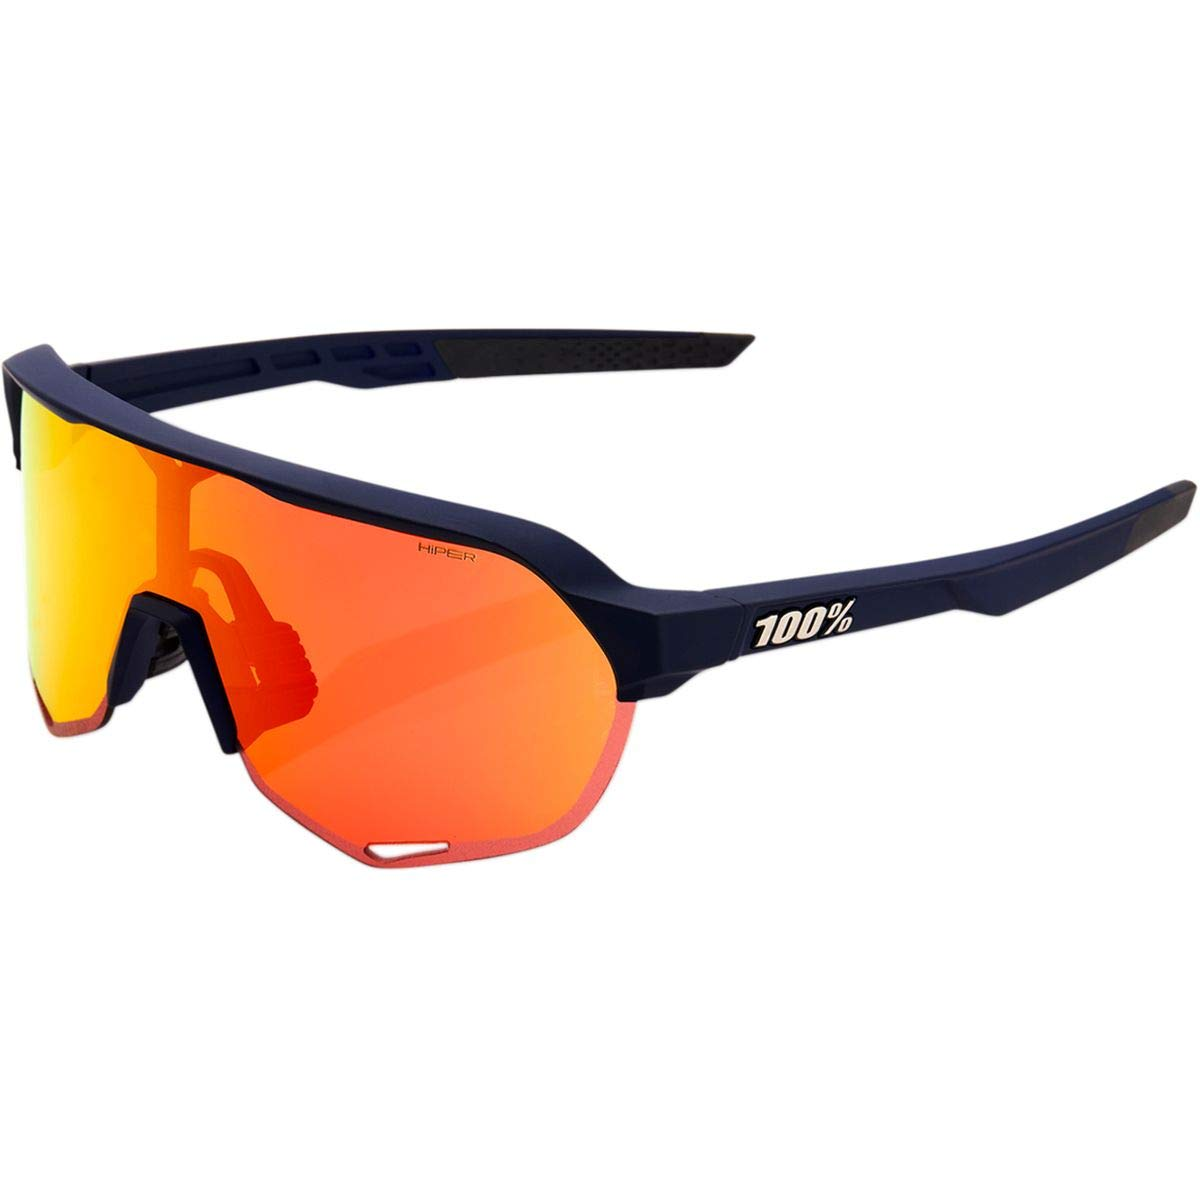 Amazon.com: Gafas de sol 100% S2., talla única : Clothing